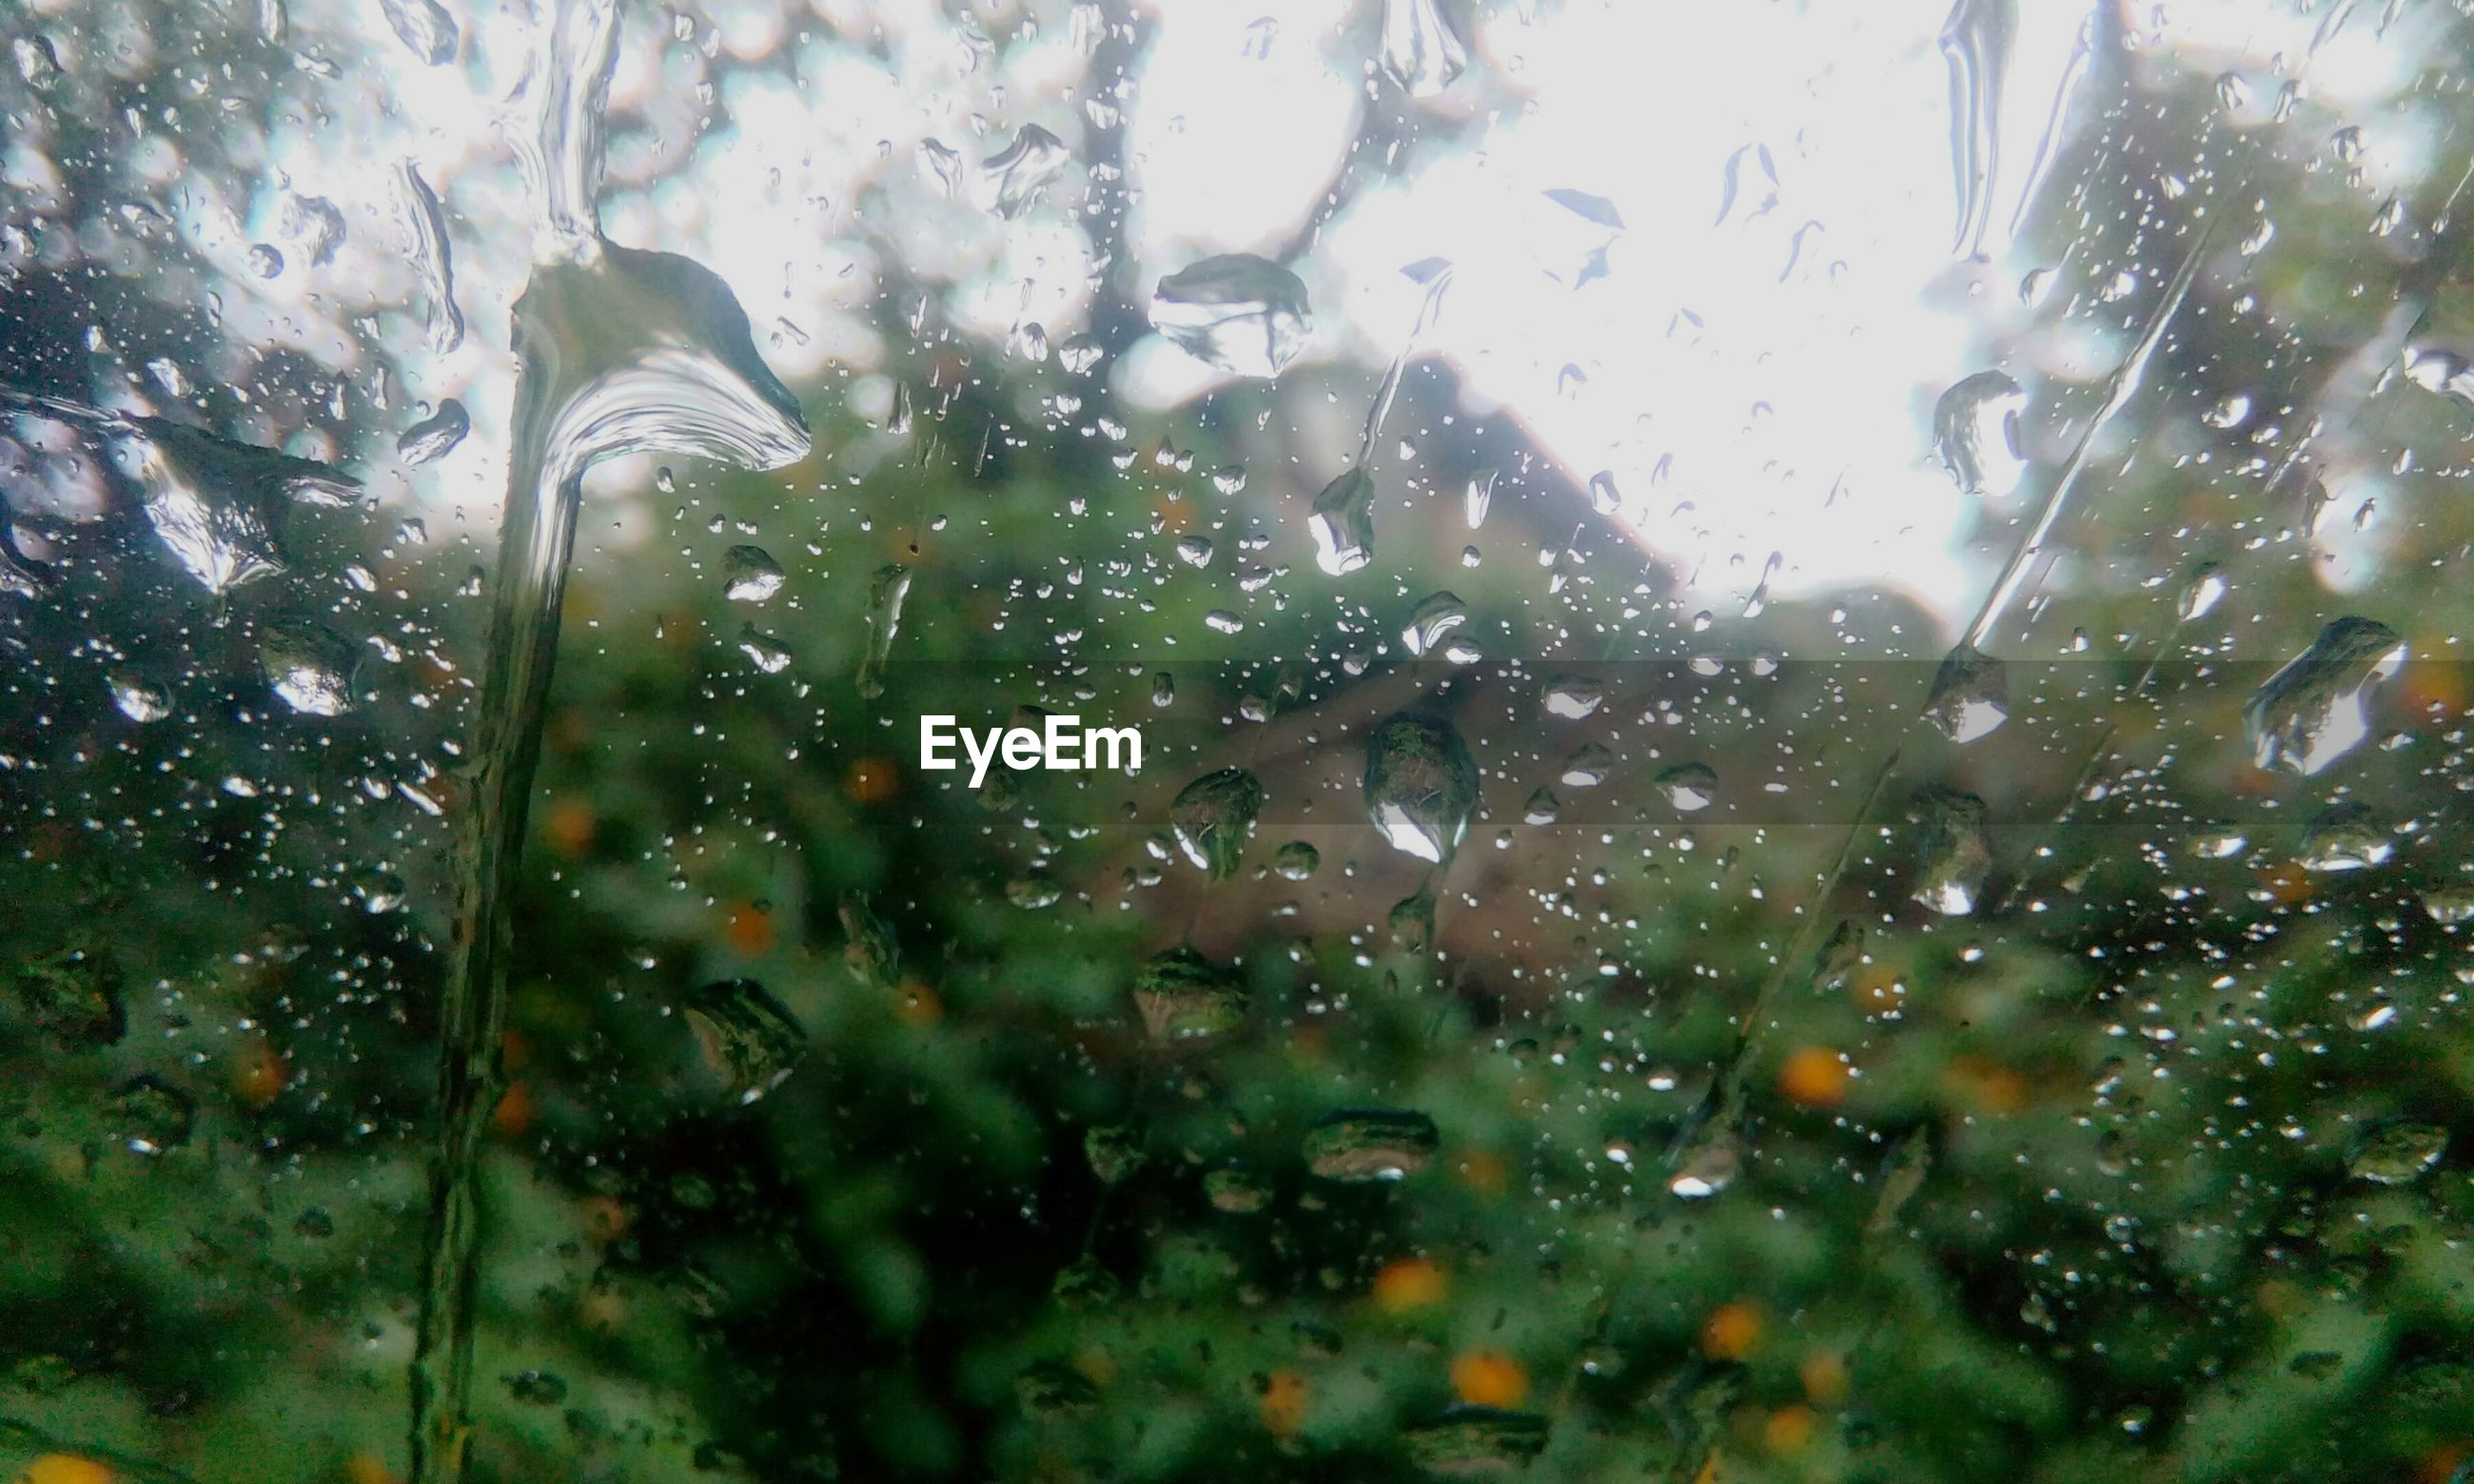 drop, transparent, wet, window, glass - material, water, indoors, rain, raindrop, full frame, glass, close-up, focus on foreground, backgrounds, weather, tree, season, no people, nature, water drop